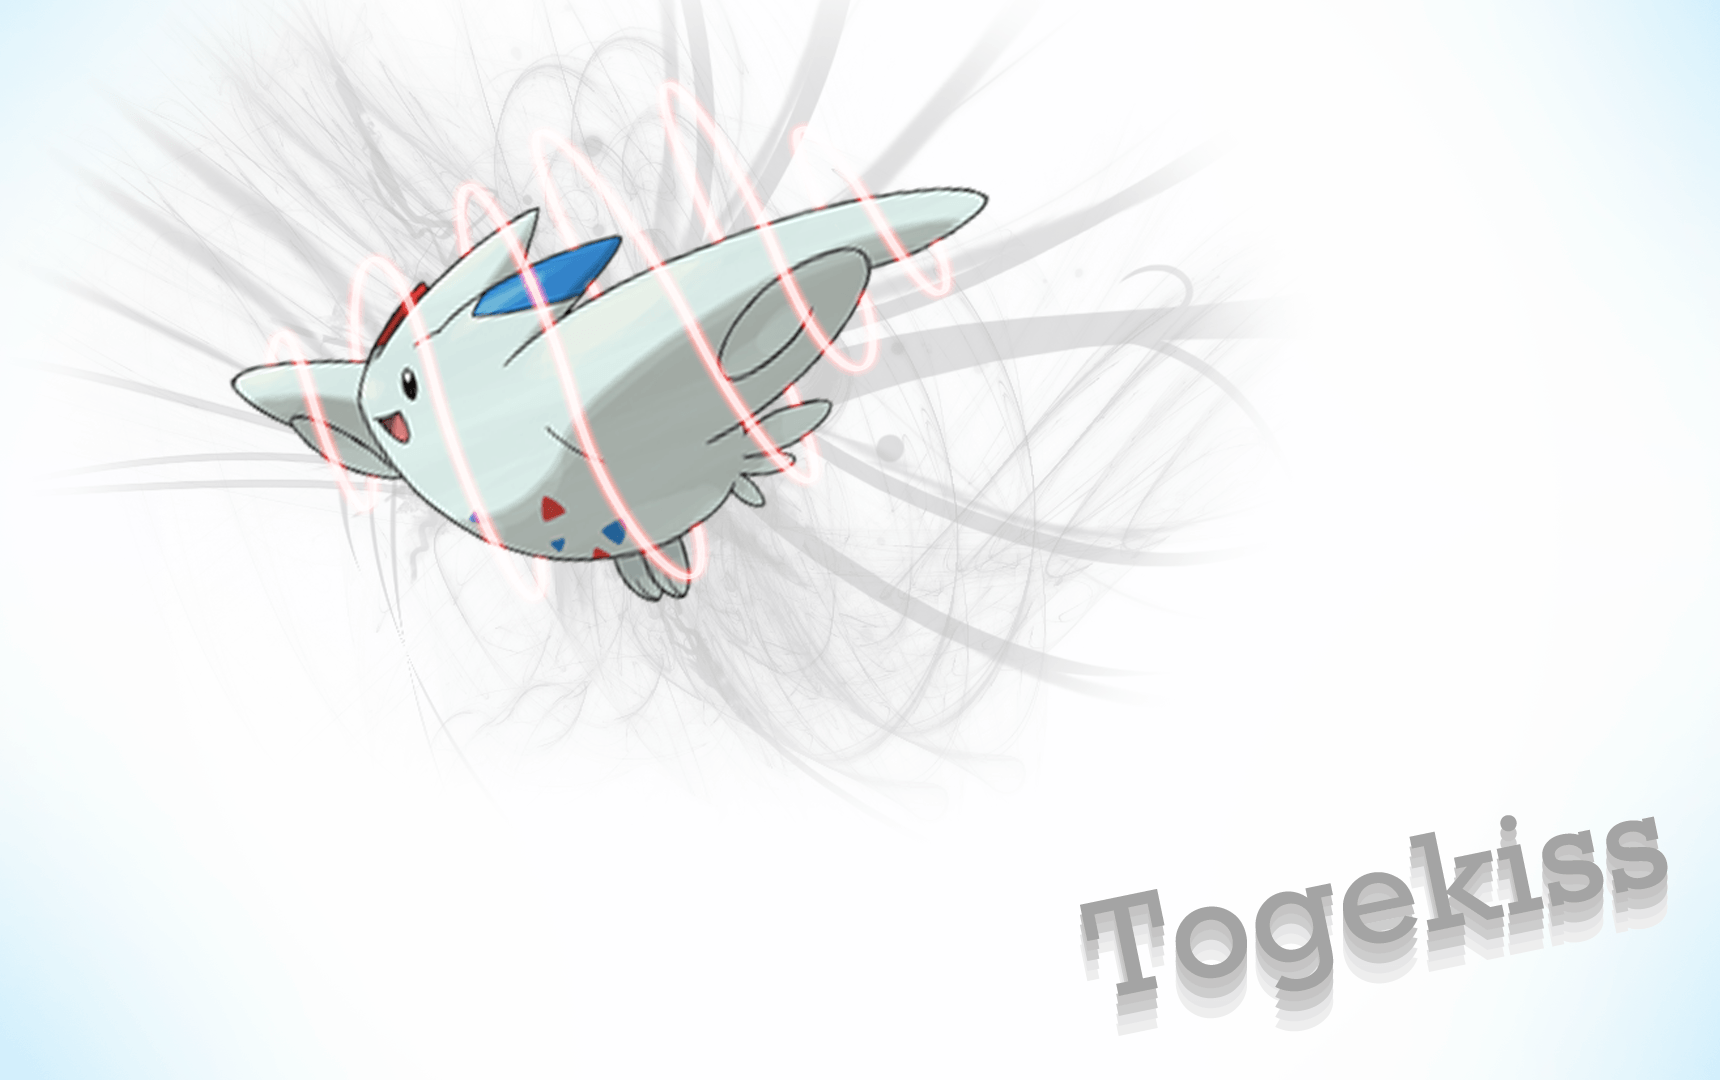 Togekiss Wallpaper by ComettTail on DeviantArt